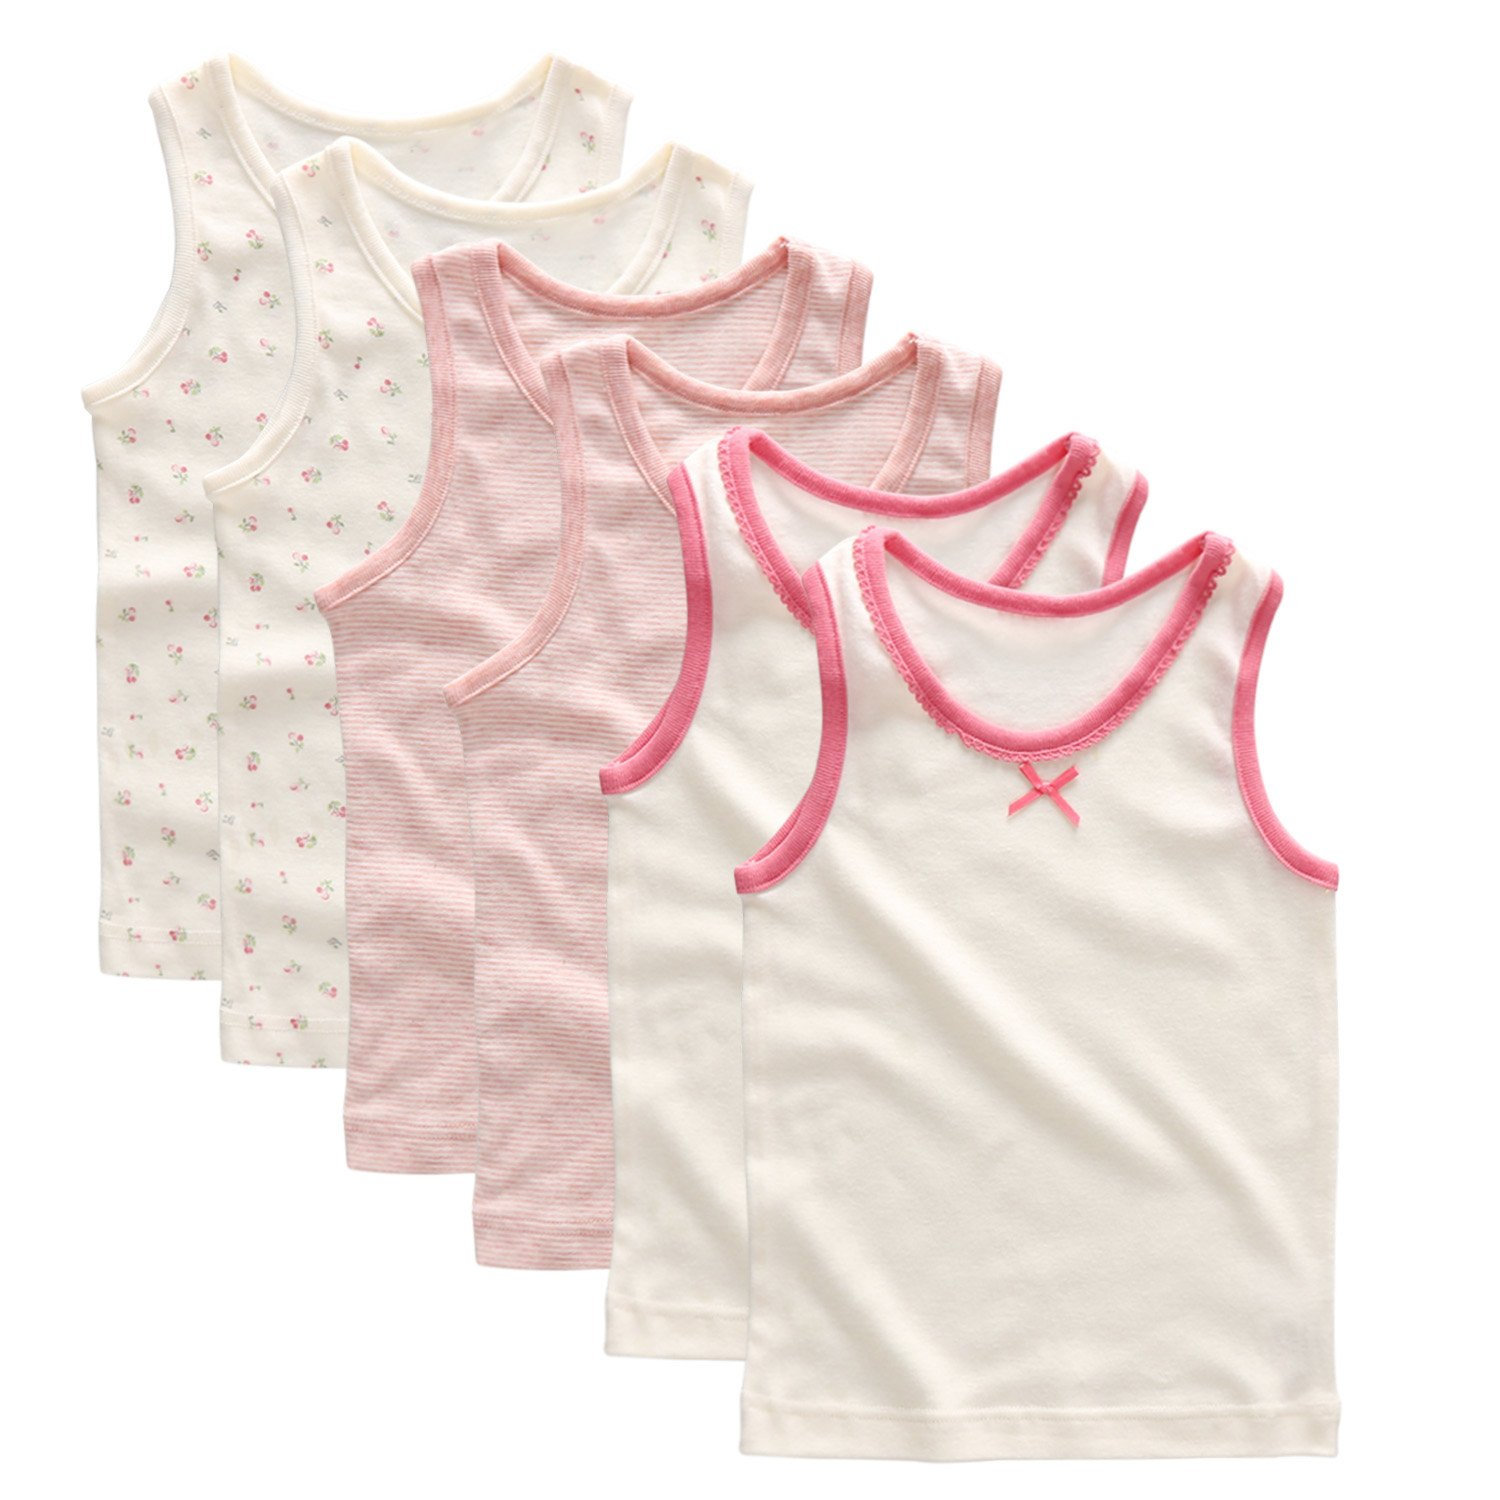 Baby Girls' Infant Toddlers 100% Cotton Tank Undershirt Tees 6 Packs Pink Size 3-4T by Coodebear